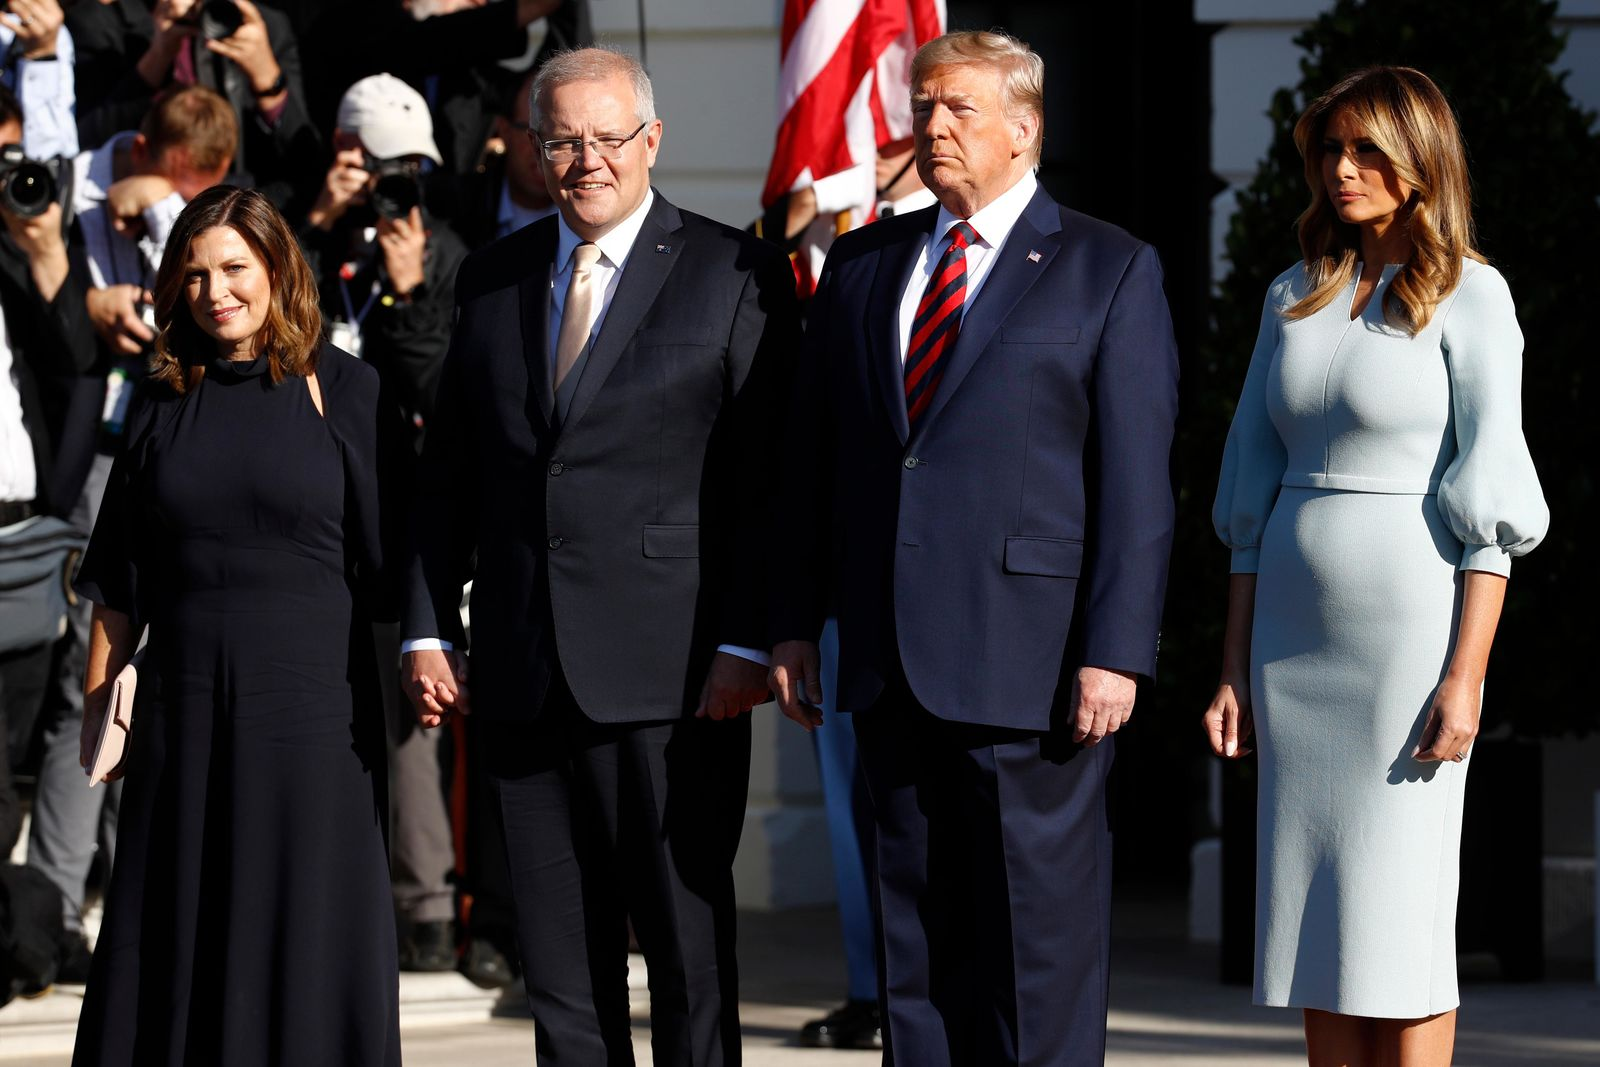 President Donald Trump and first lady Melania Trump welcome Australian Prime Minister Scott Morrison and his wife Jenny Morrison during a State Arrival Ceremony on the South Lawn of the White House in Washington, Friday, Sept. 20, 2019, in Washington. (AP Photo/Patrick Semansky)